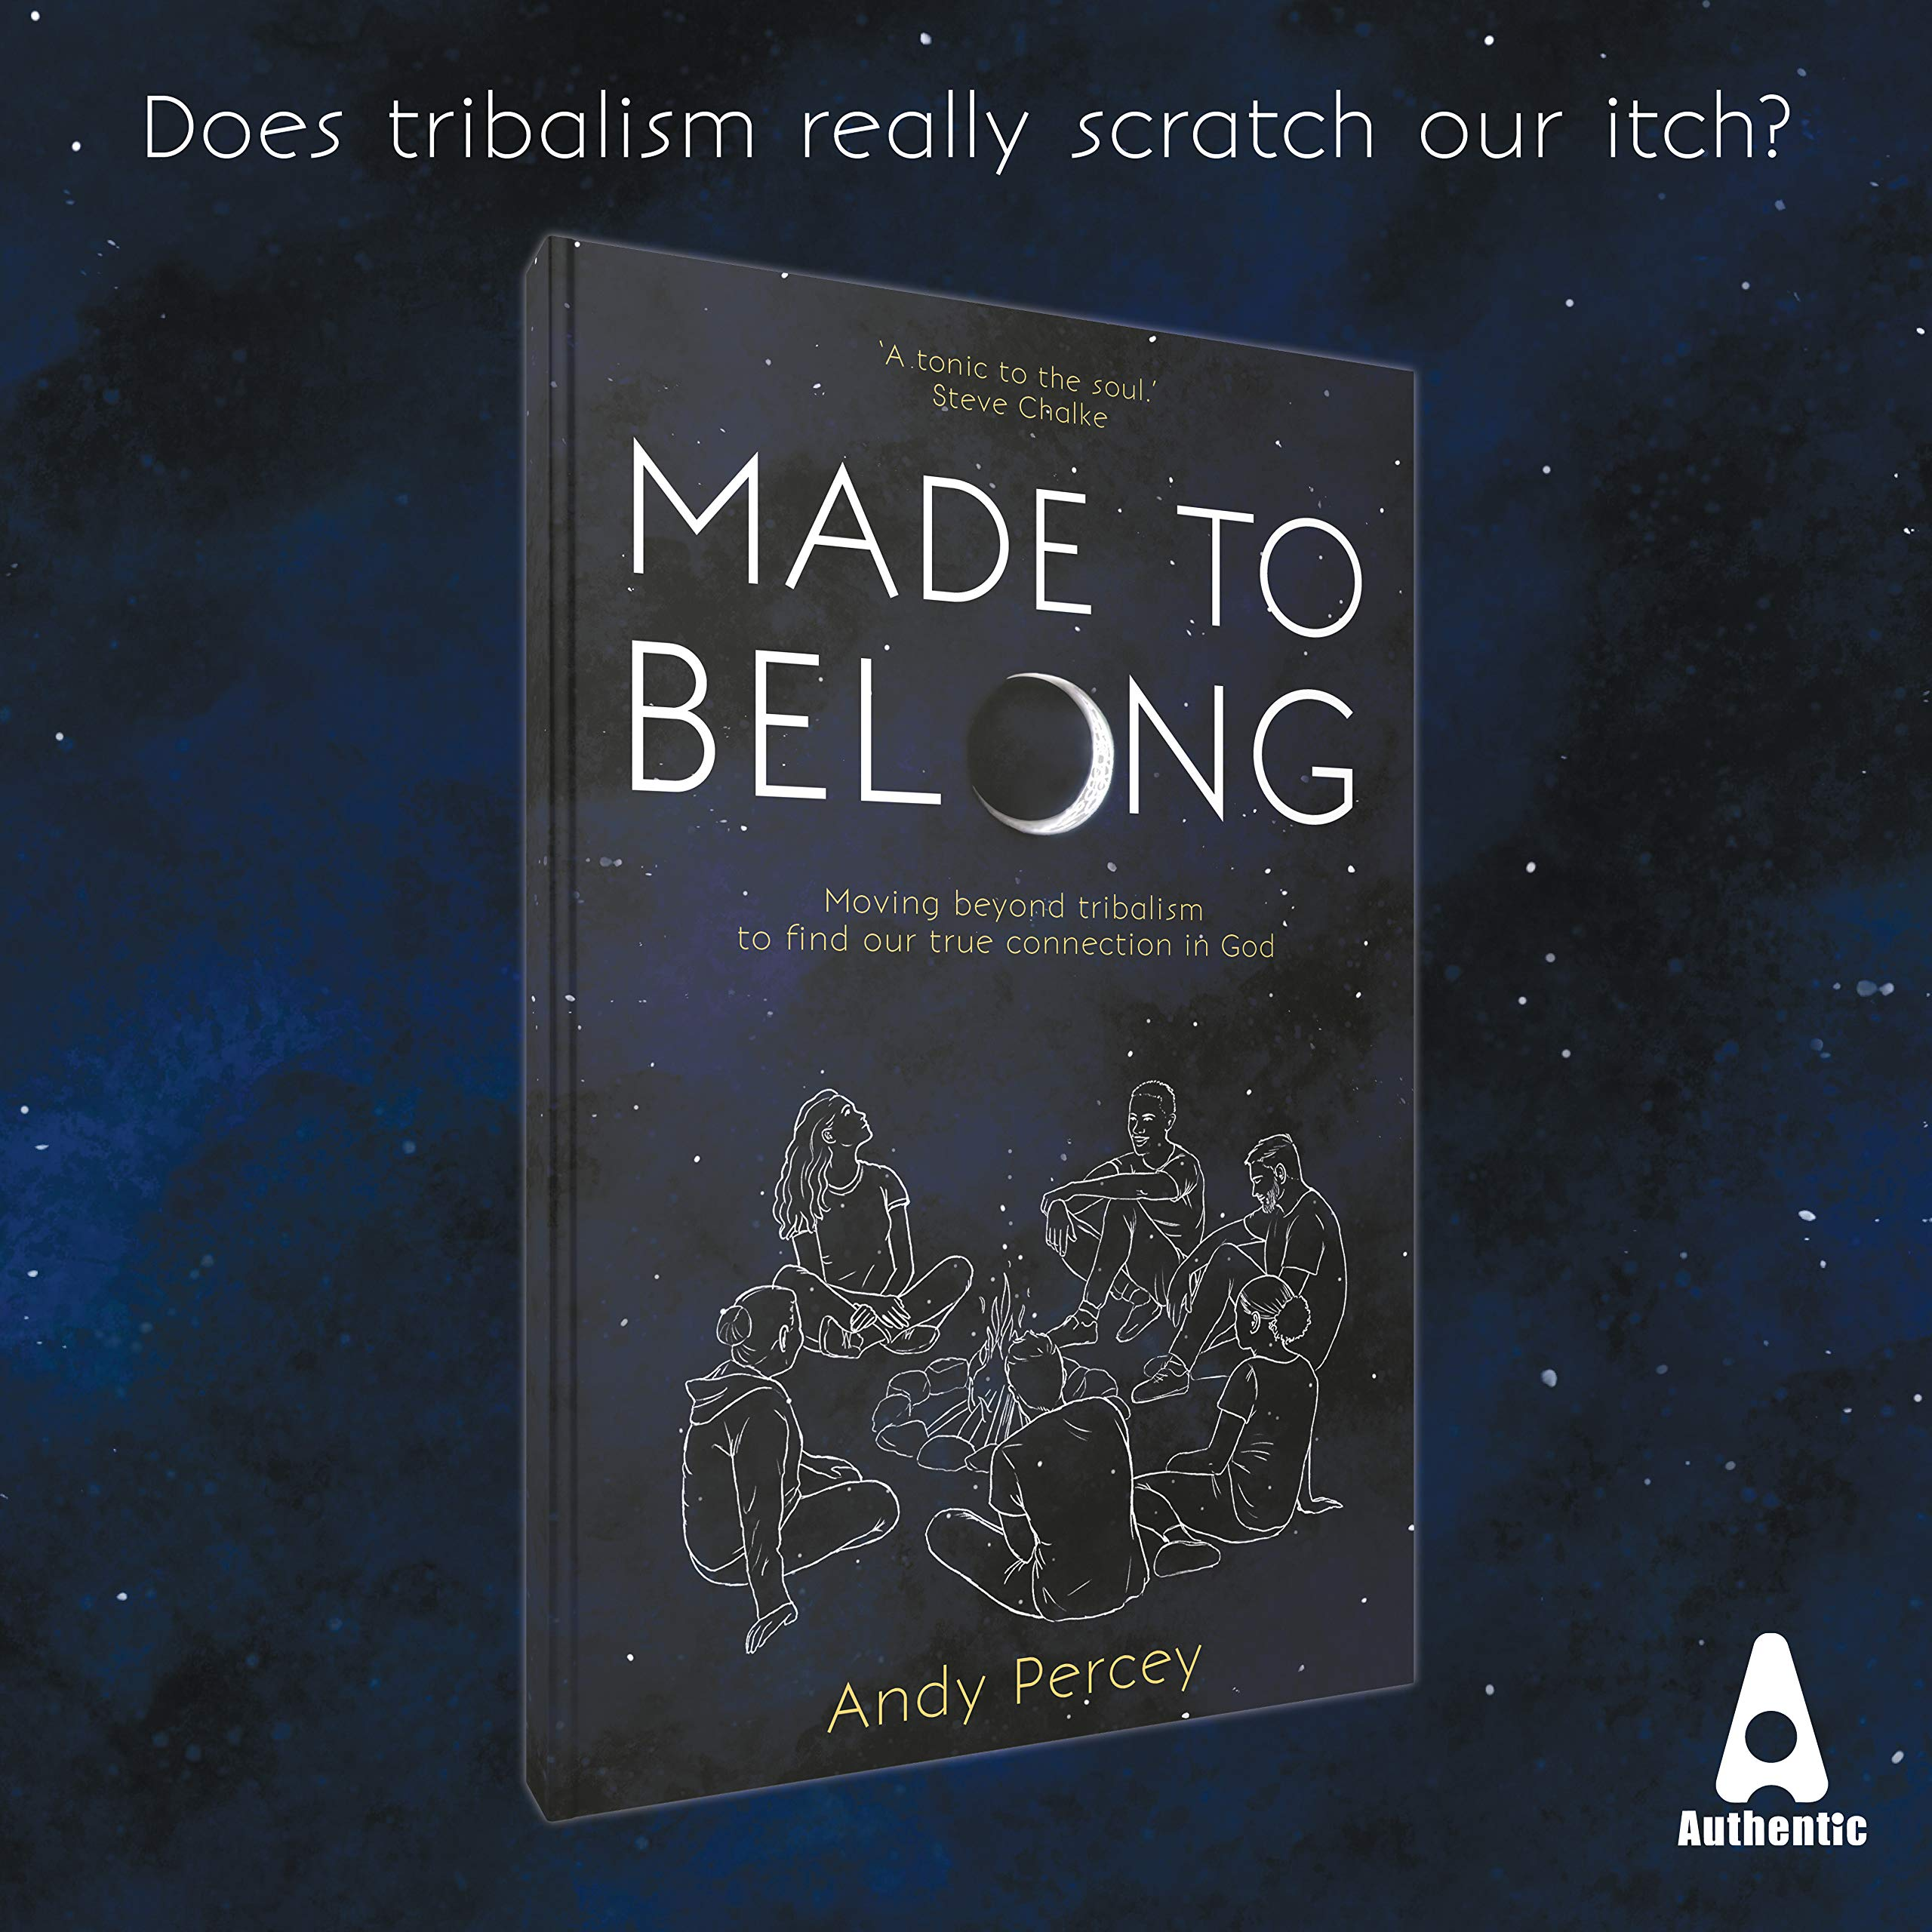 Made to Belong: Moving Beyond Tribalism to Find Our True Connection in God cover photo